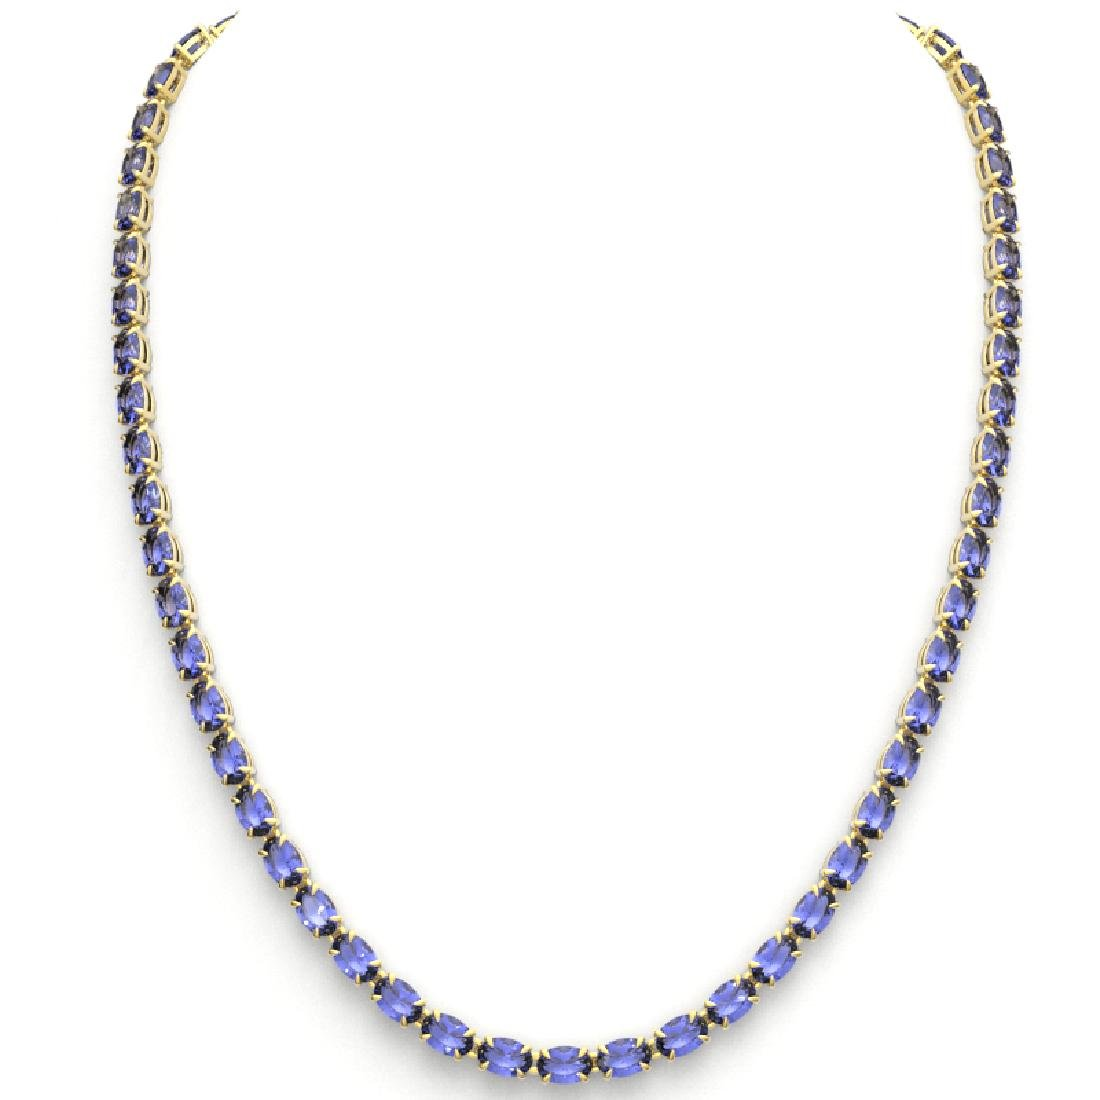 40 CTW Tanzanite Eternity Tennis Necklace 14K Yellow - 3